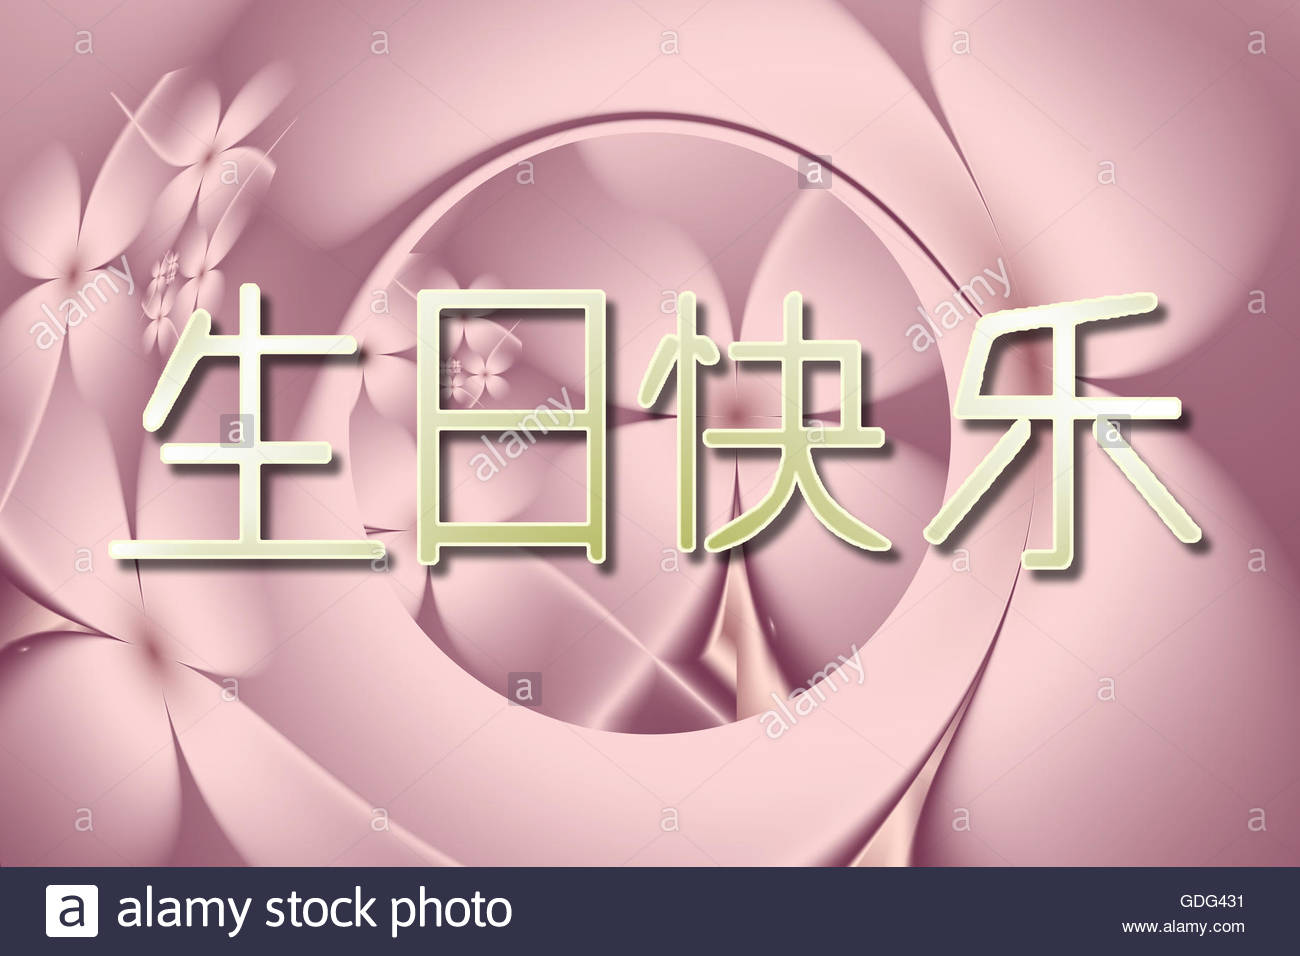 happy birthday message in chinese ; happy-birthday-wishes-written-in-chinese-characters-on-beautiful-floral-GDG431